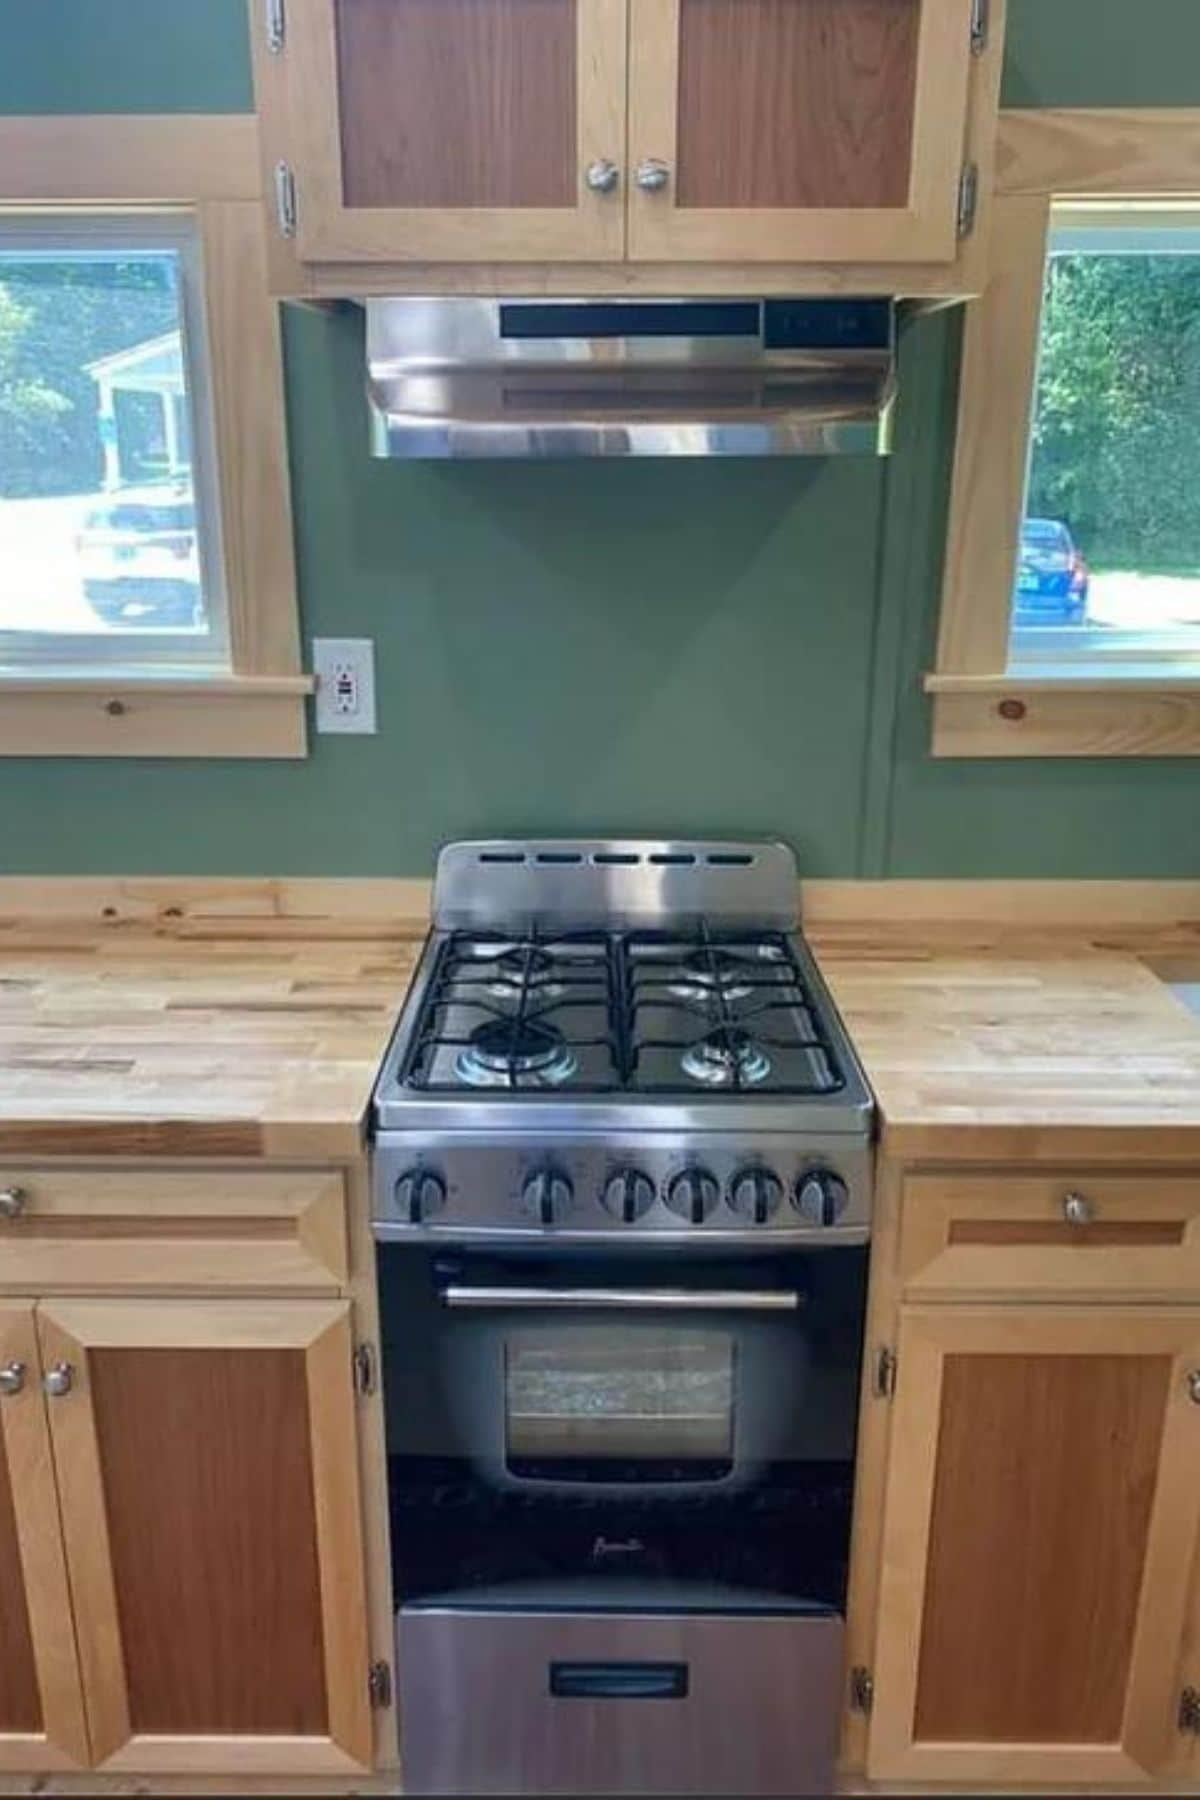 4 burner gas stainless steel stove in butcher block cabinets